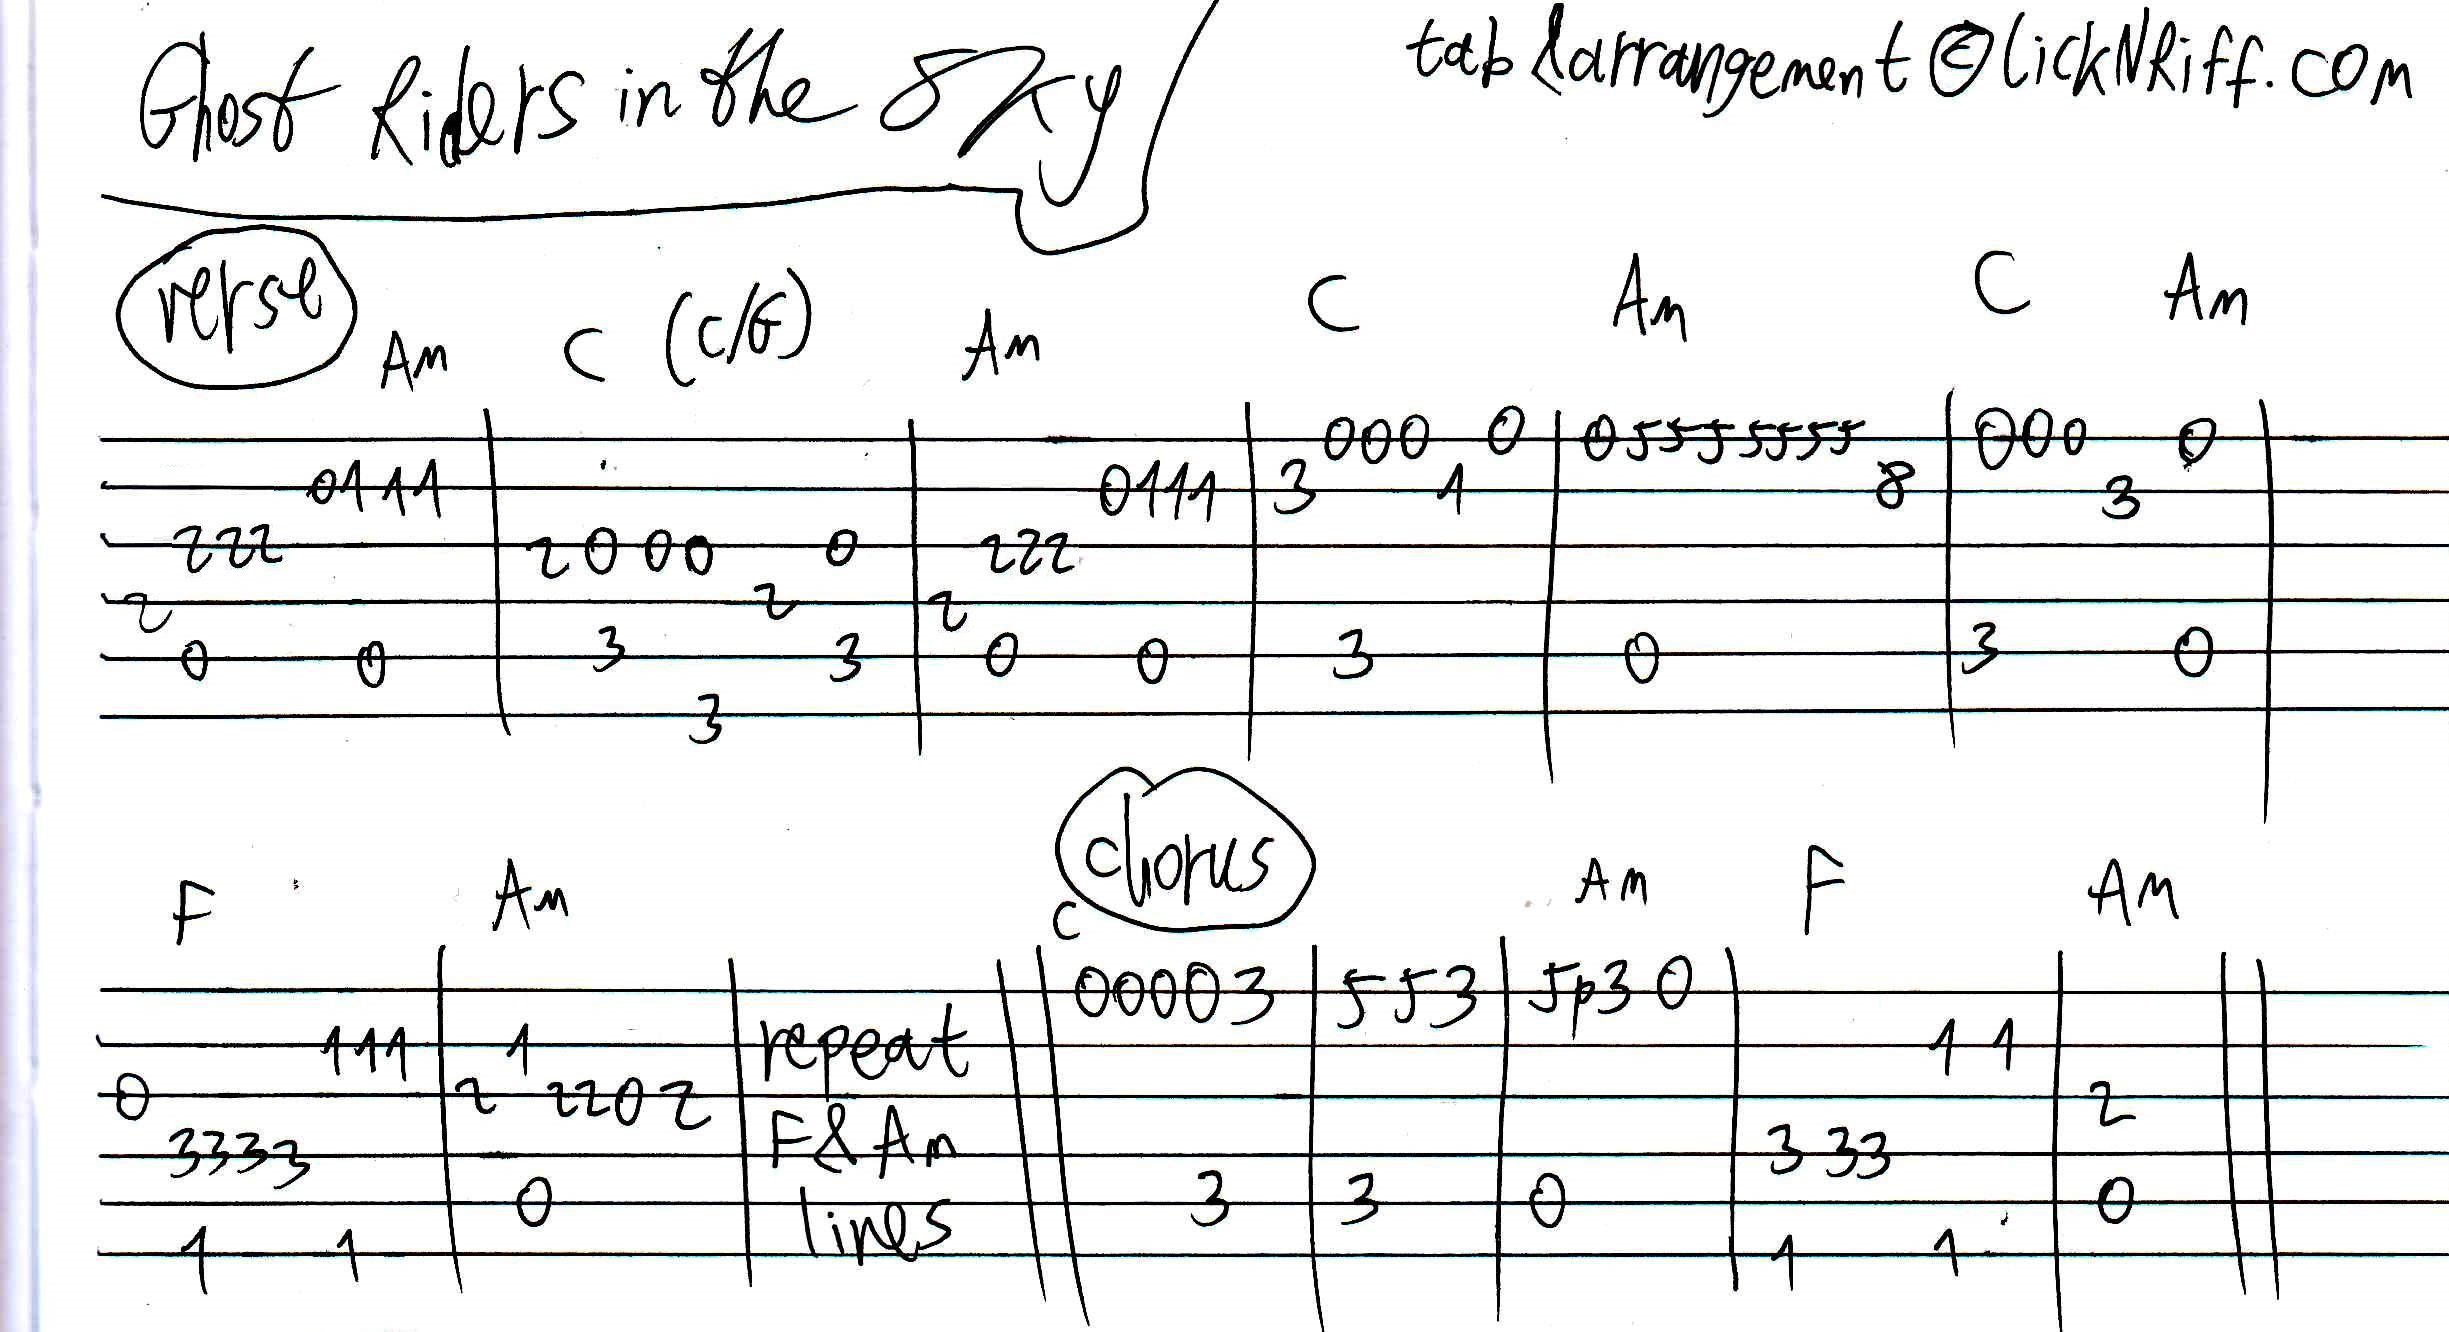 Johnny Cash   Ghost Riders in the Sky   Tablature   Tab   Chords ...